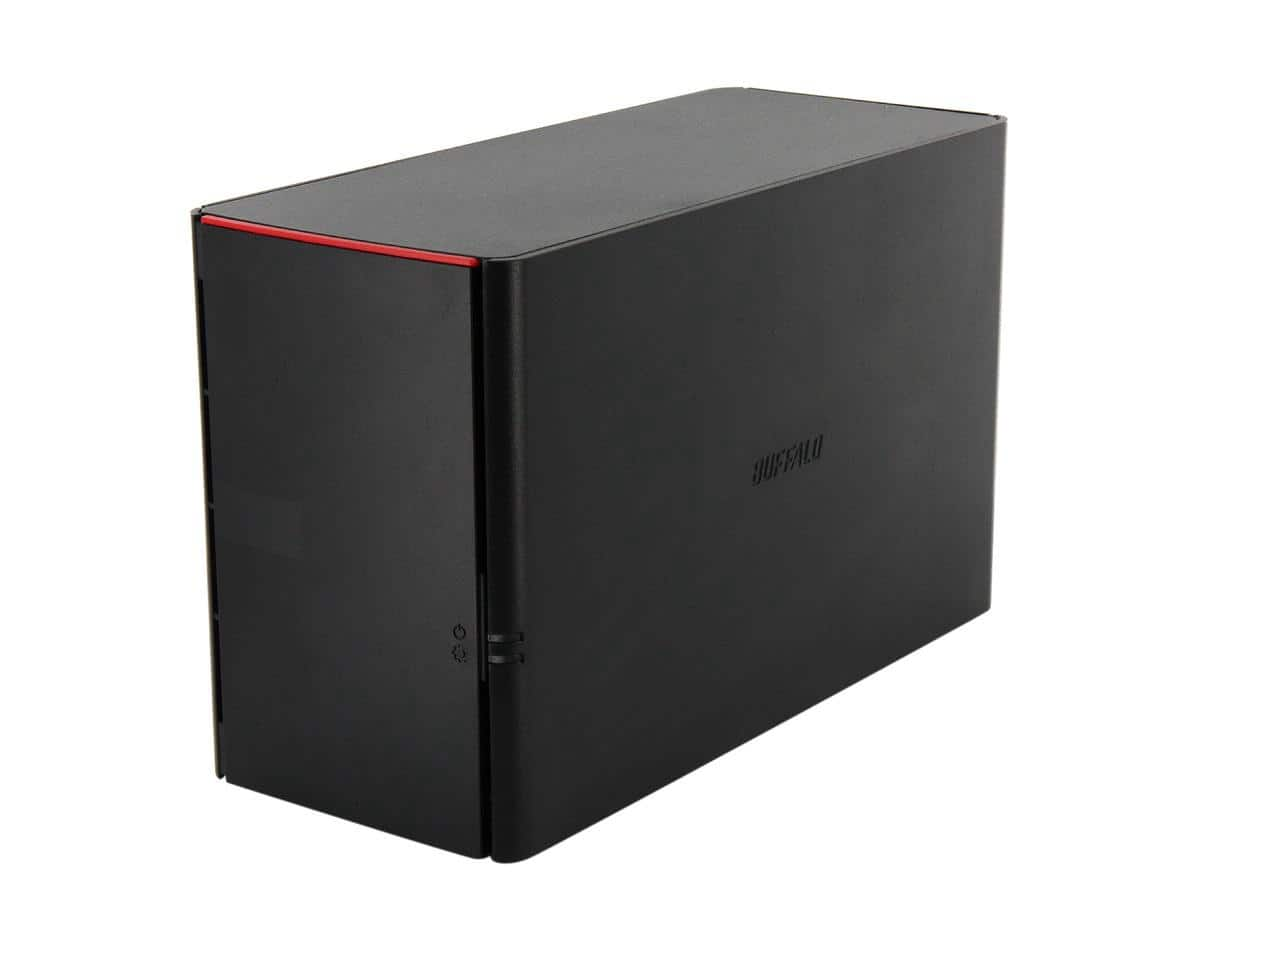 Newegg has BUFFALO LS220D0402 4TB NAS on sale at $199 with promo code